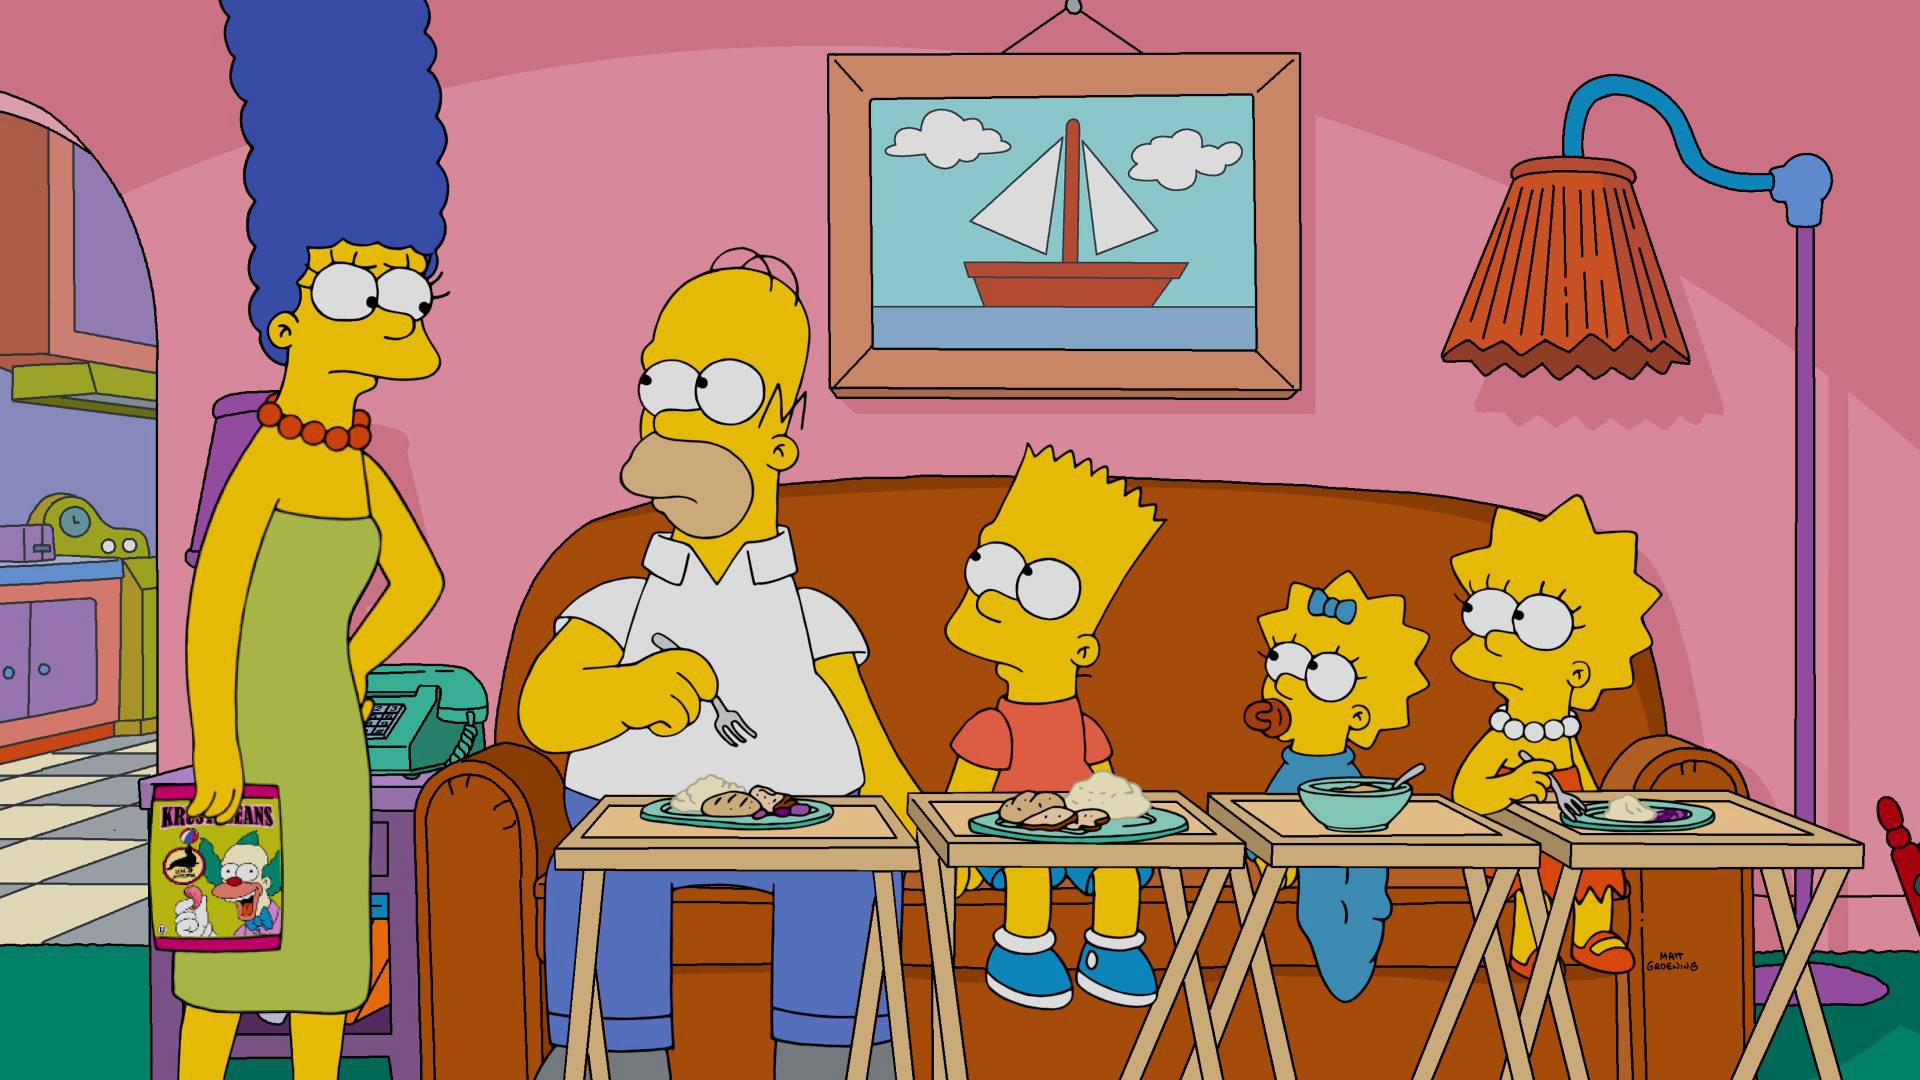 THE SIMPSONS, (from left): Marge Simpson, Homer Simpson, Bart Simpson, Maggie Simpson, Lisa